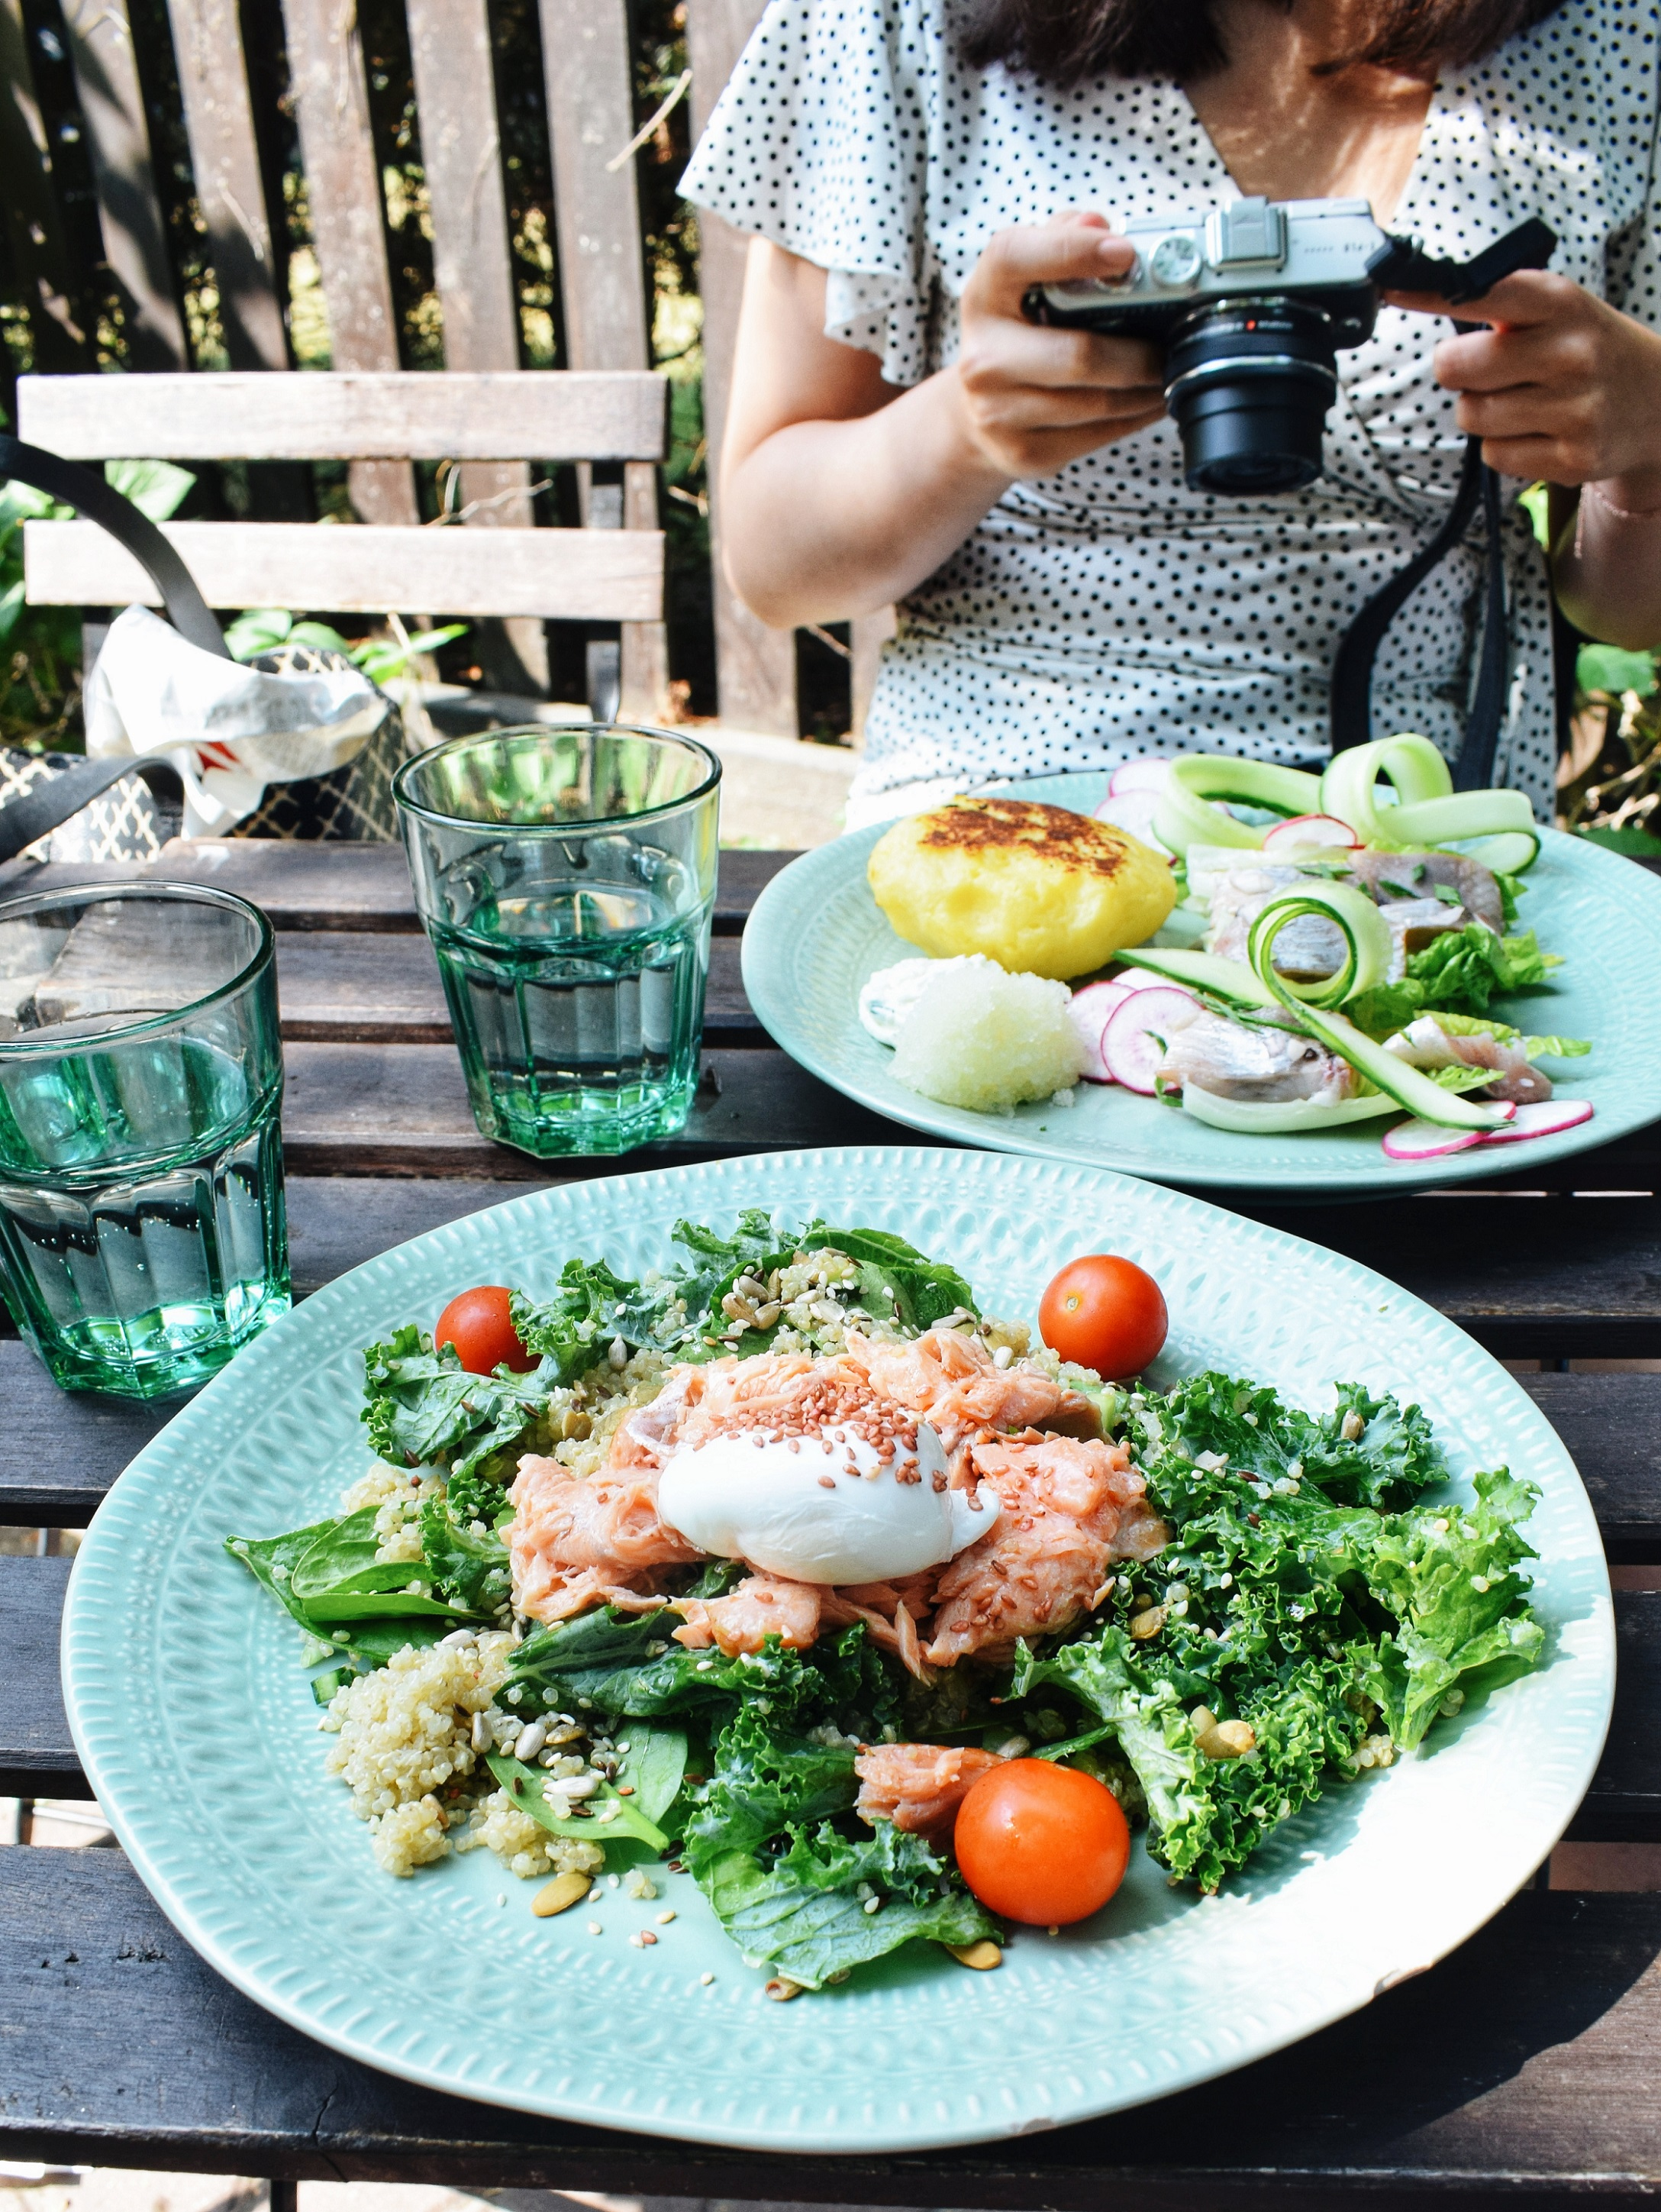 Outlandish blog relationship food photography challenge favourite restaurant Tallinn Estonia